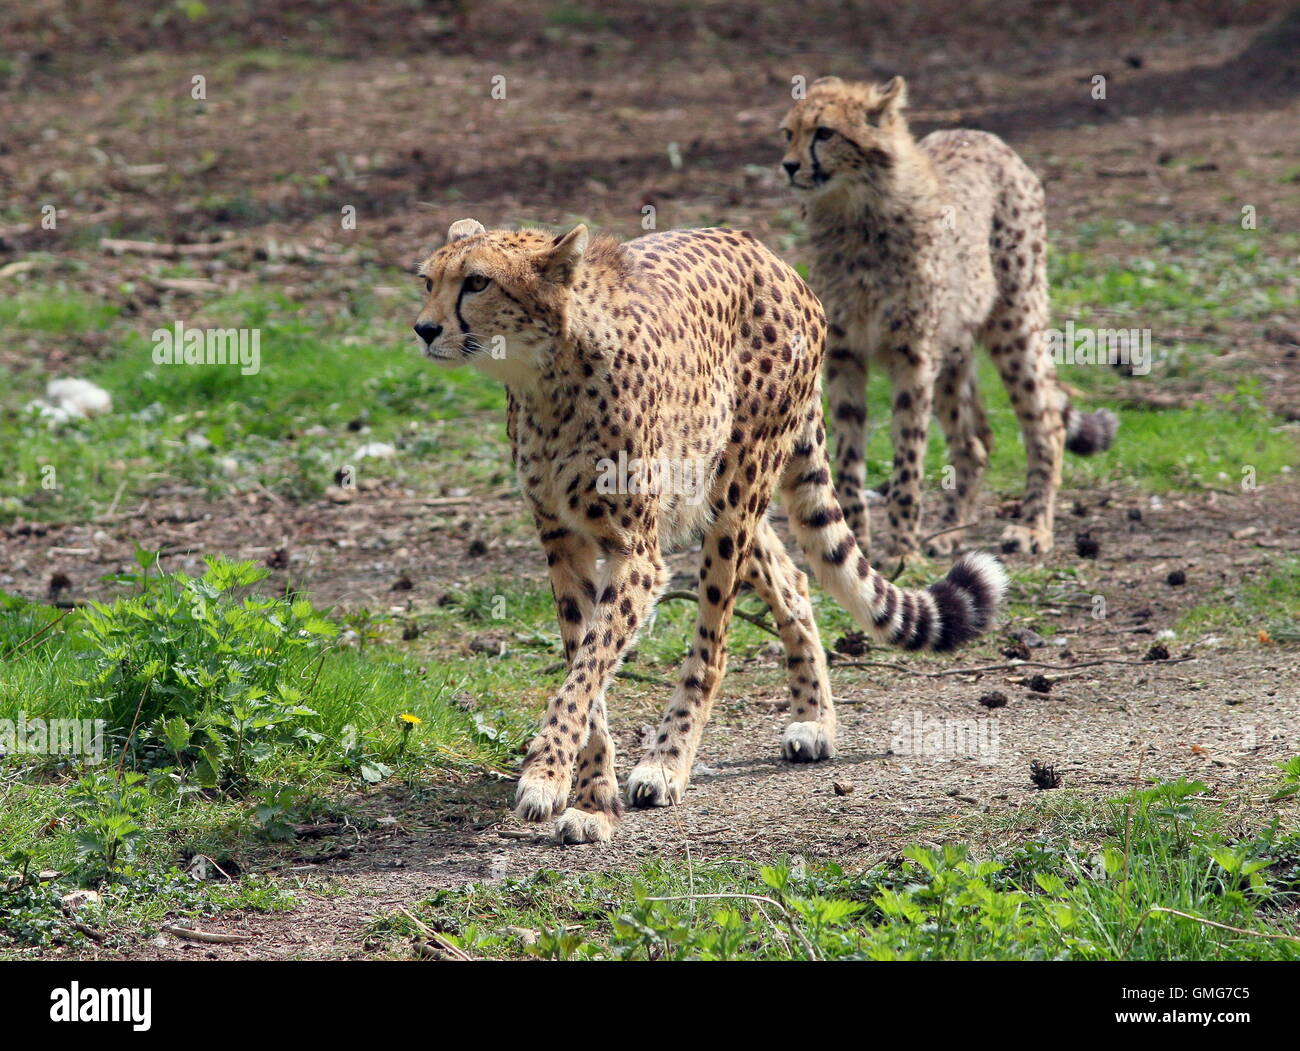 Female African Cheetah (Acinonyx jubatus) with an adolescent cub - Stock Image